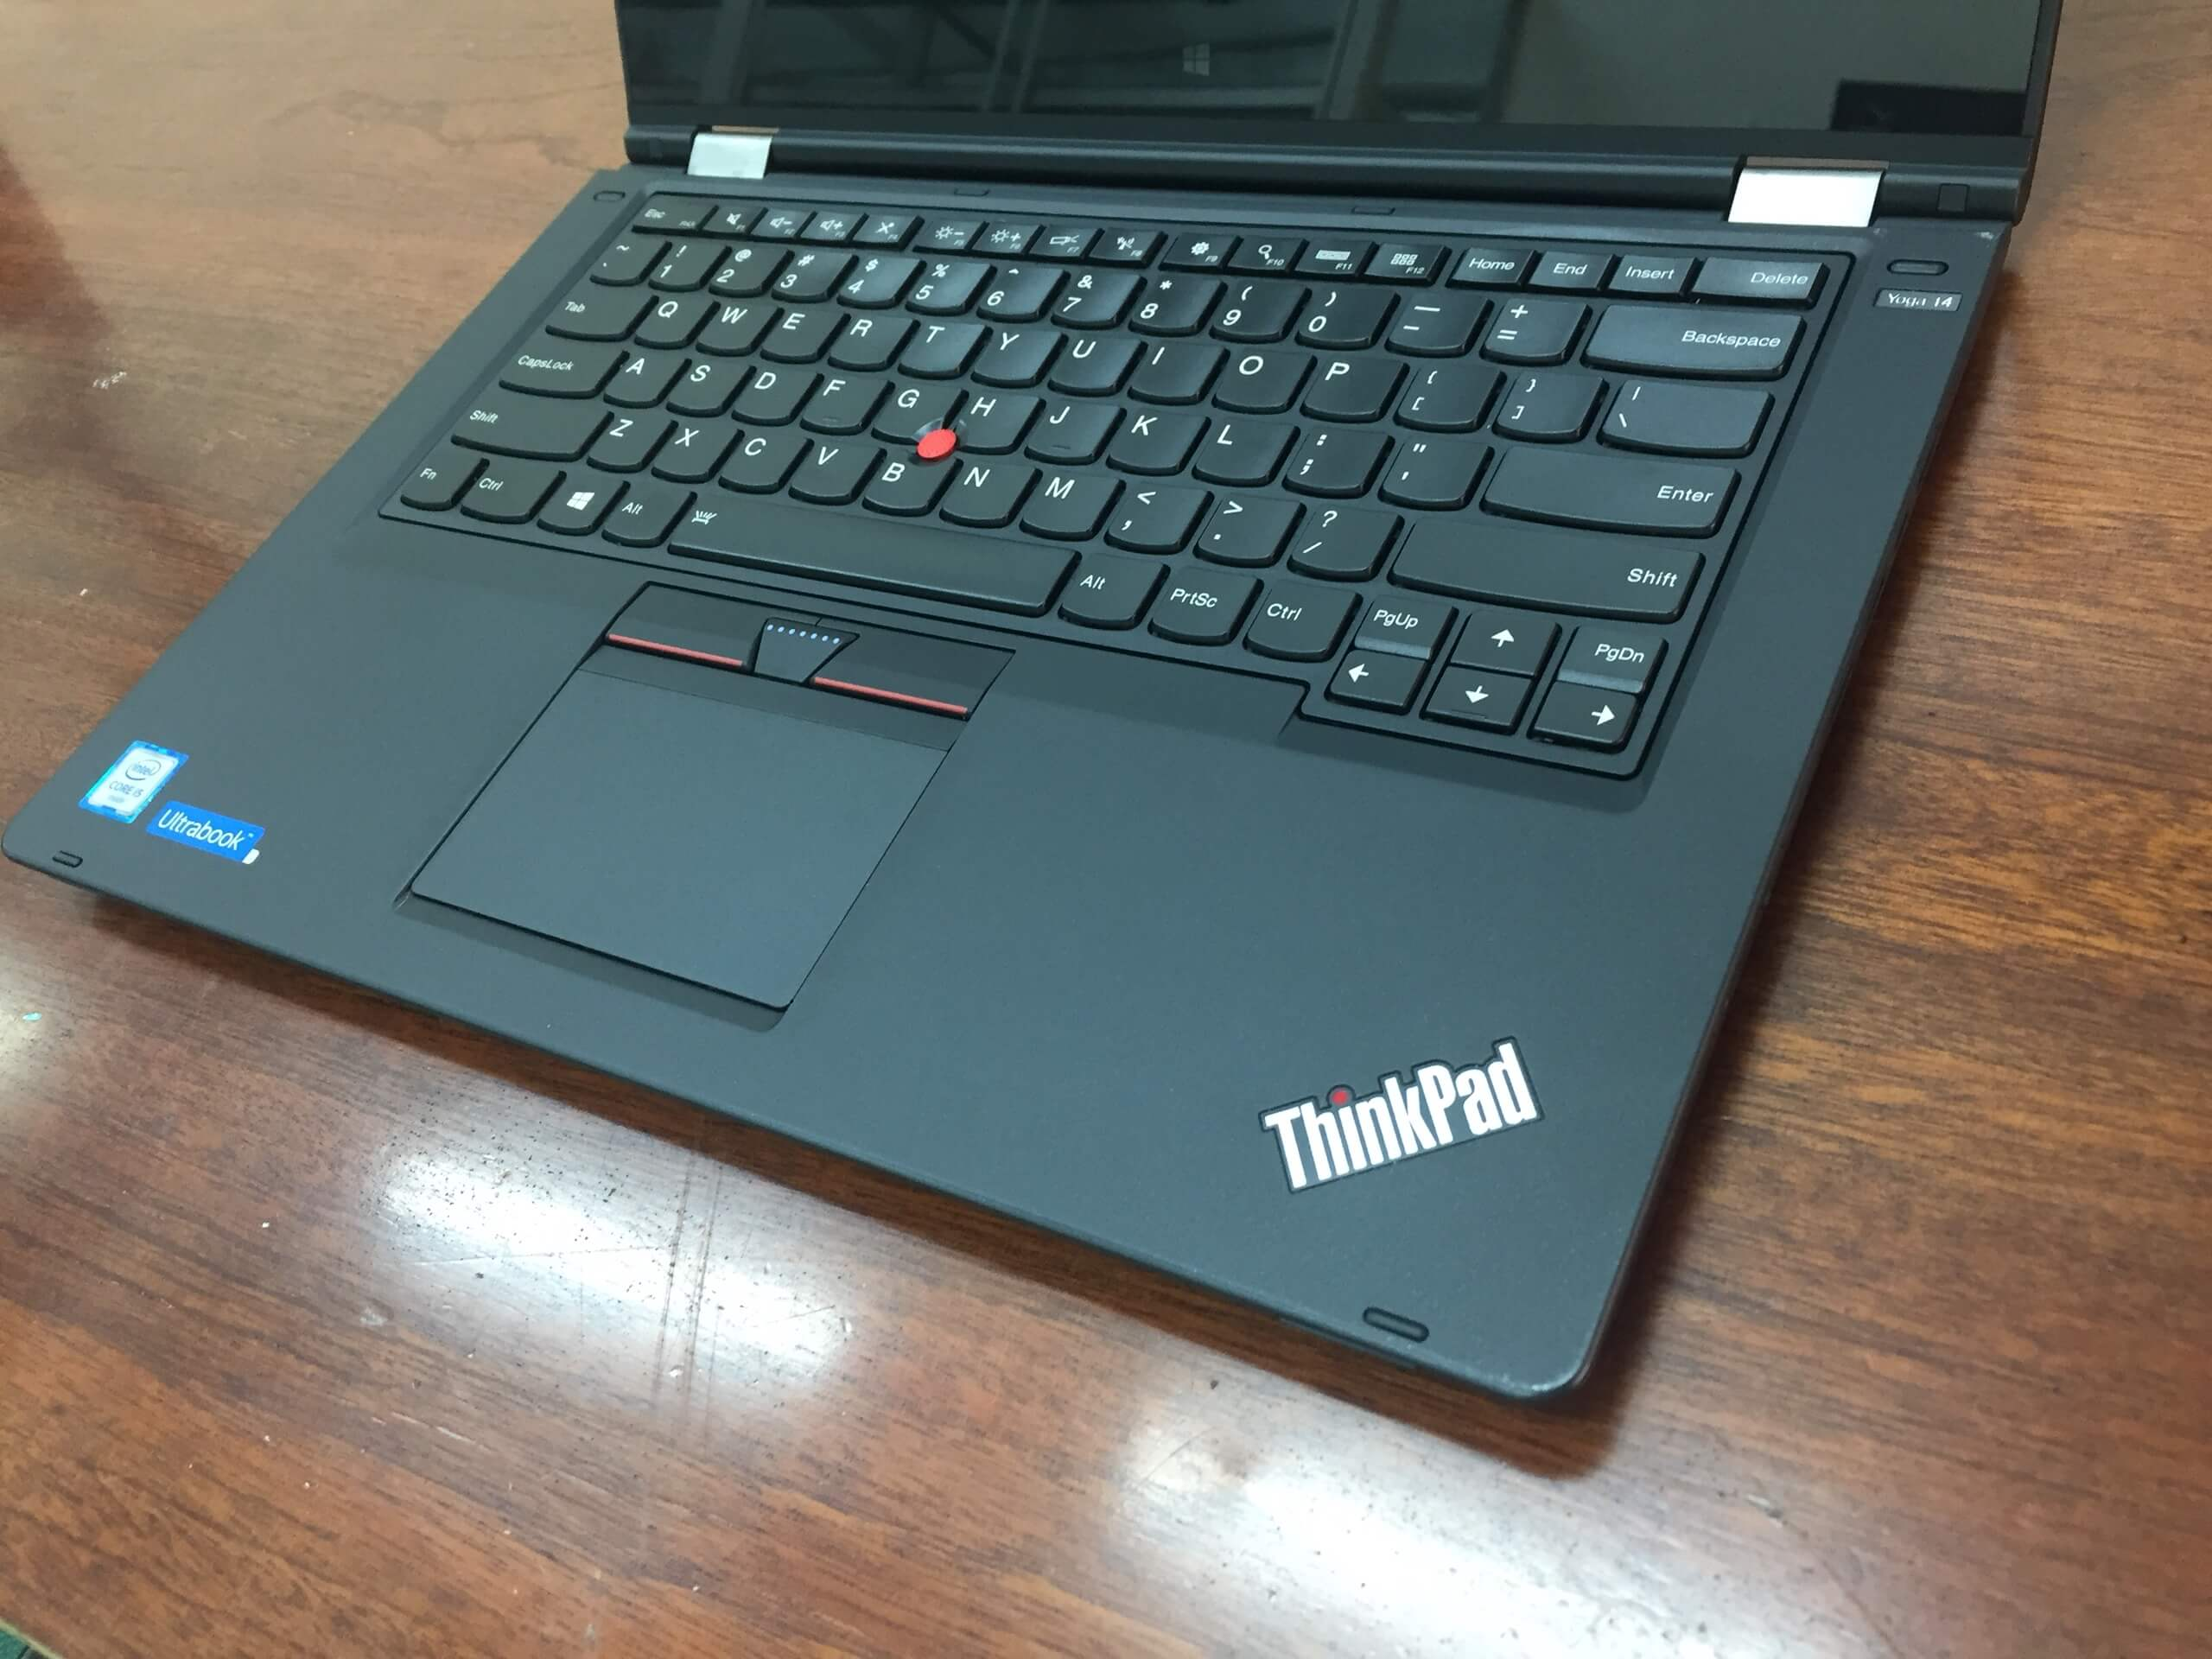 Lenovo ThinkPad Yoga 14 - Laptop3mien.vn (10)